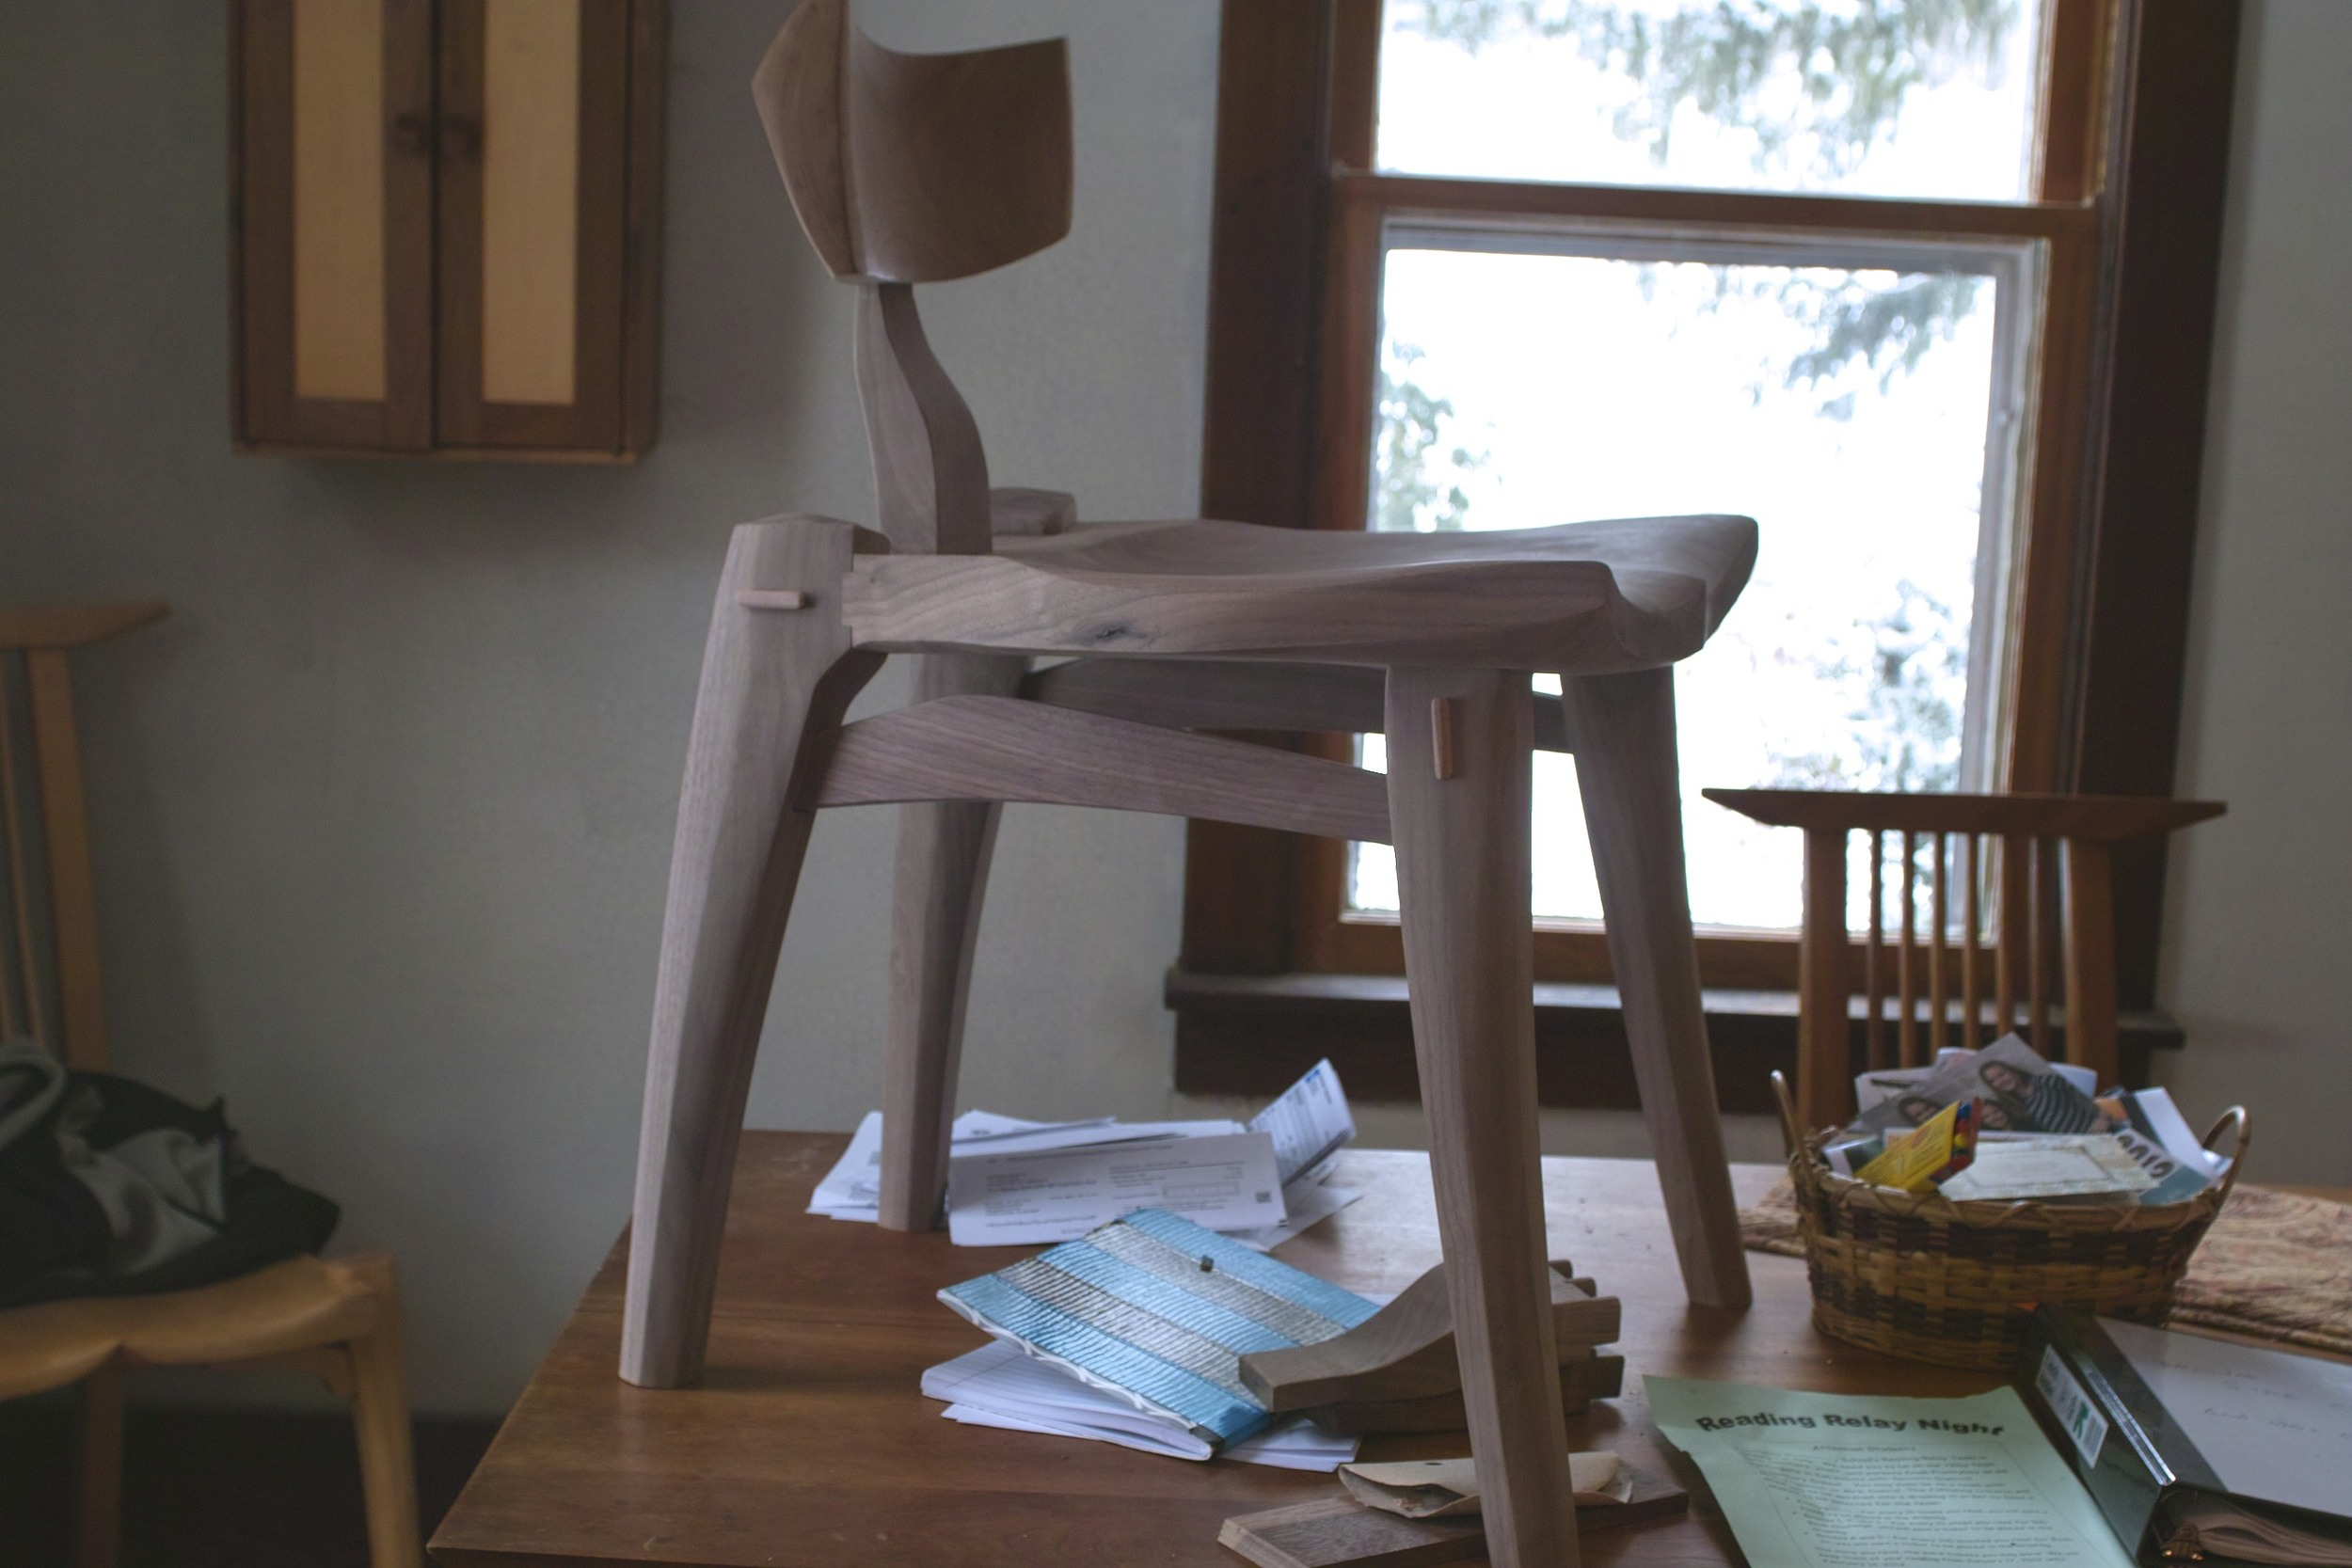 unfinished chair, work in progress